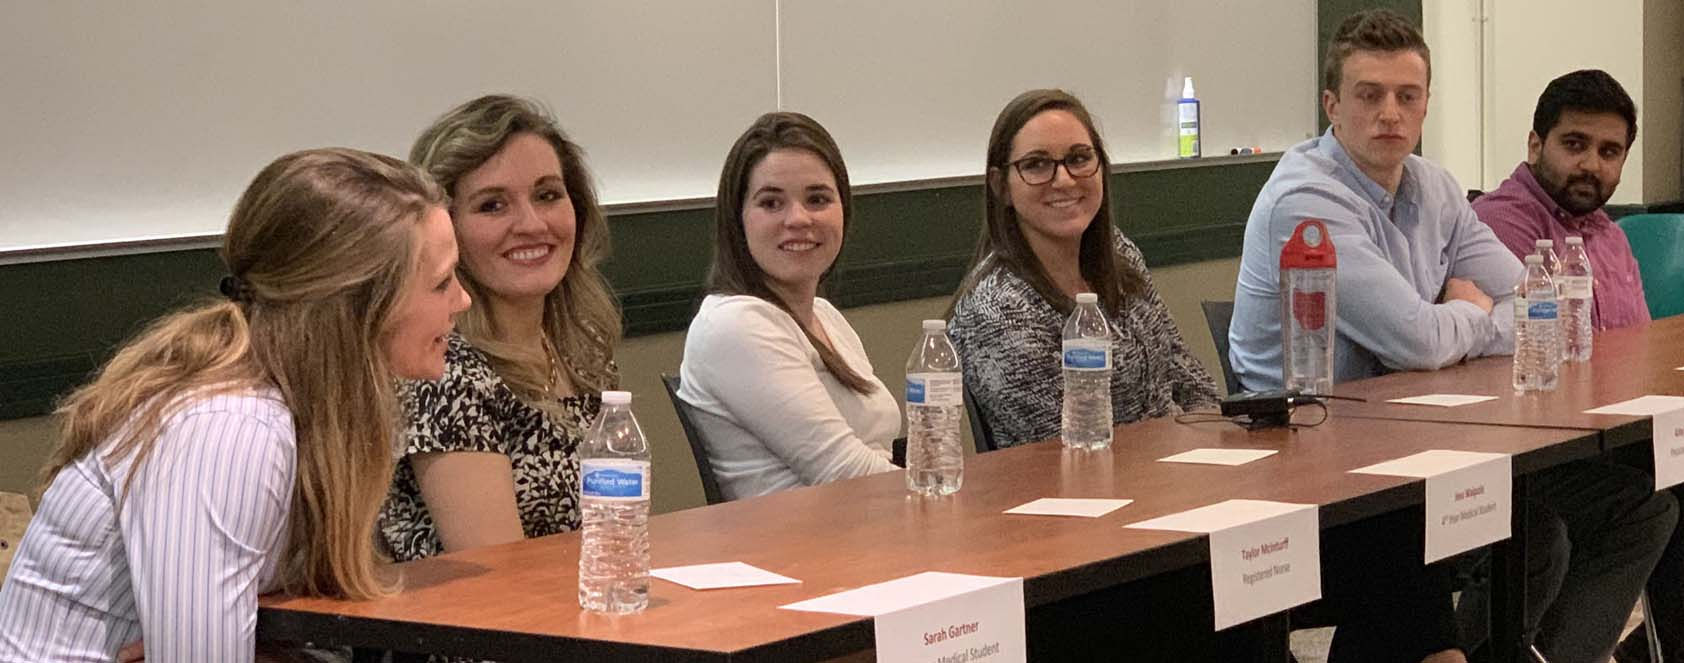 Panel of alumni in professional school returning to Miami for Health Careers Week